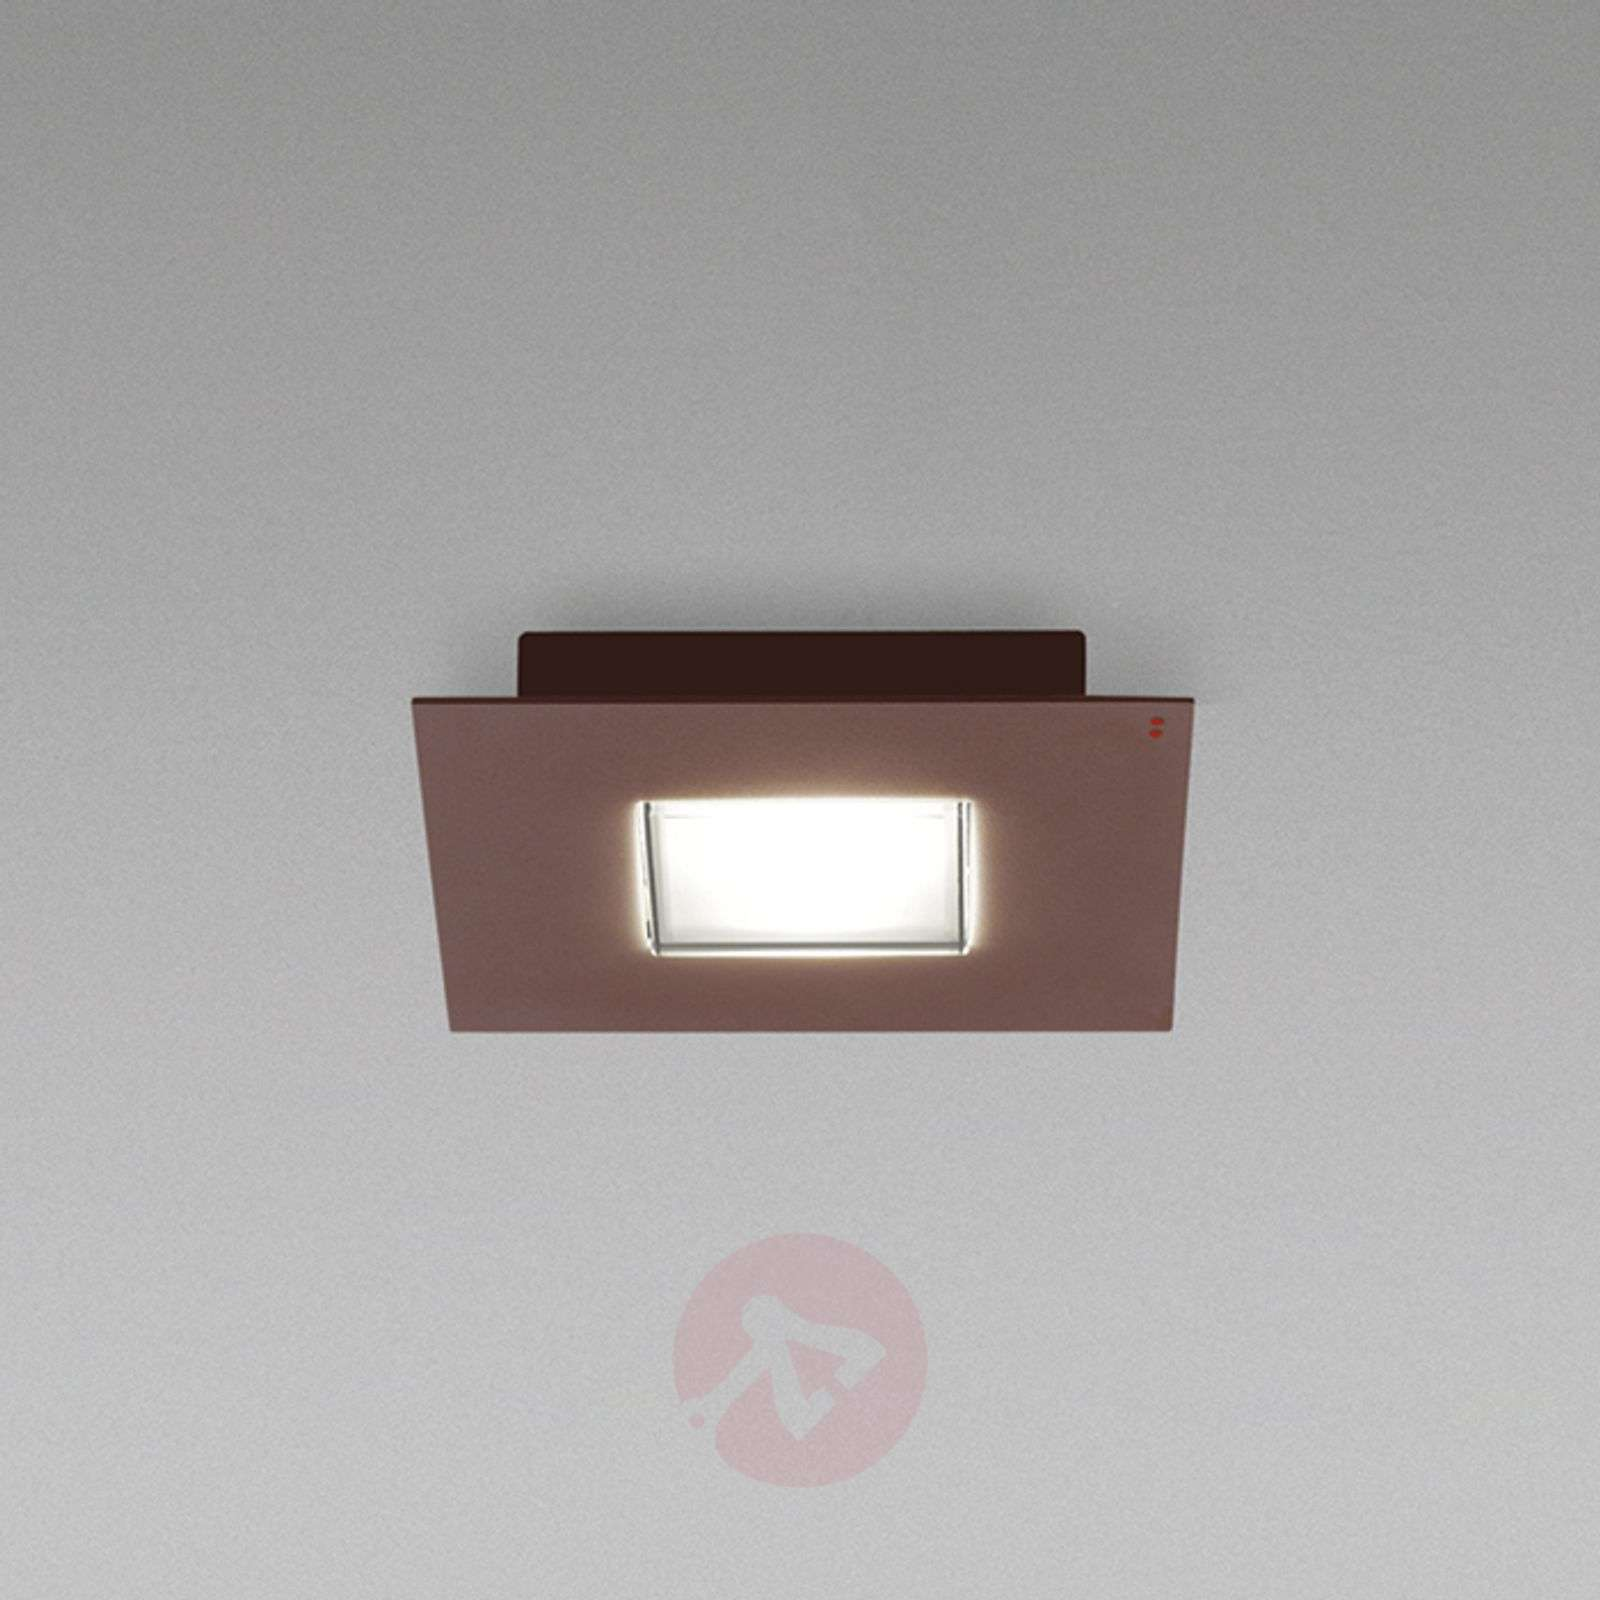 Plafoniere Con Bordo In Legno : Acquista plafoniera led quarter con bordo marrone lampade.it